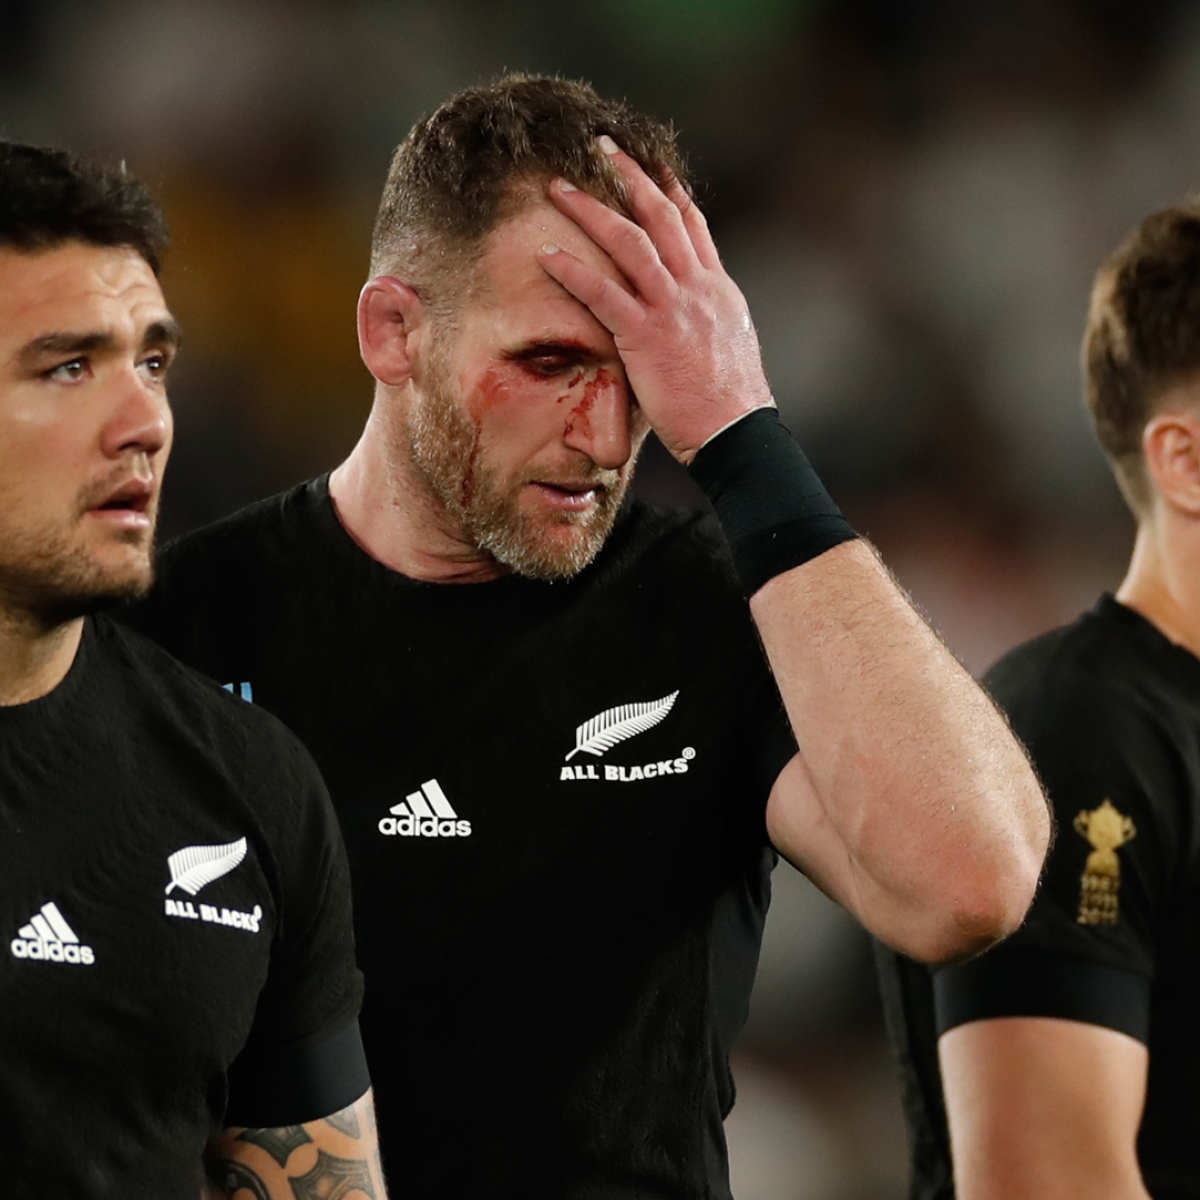 Rugby World Cup: NZ lose to England; Jimmy Neesham wins internet again